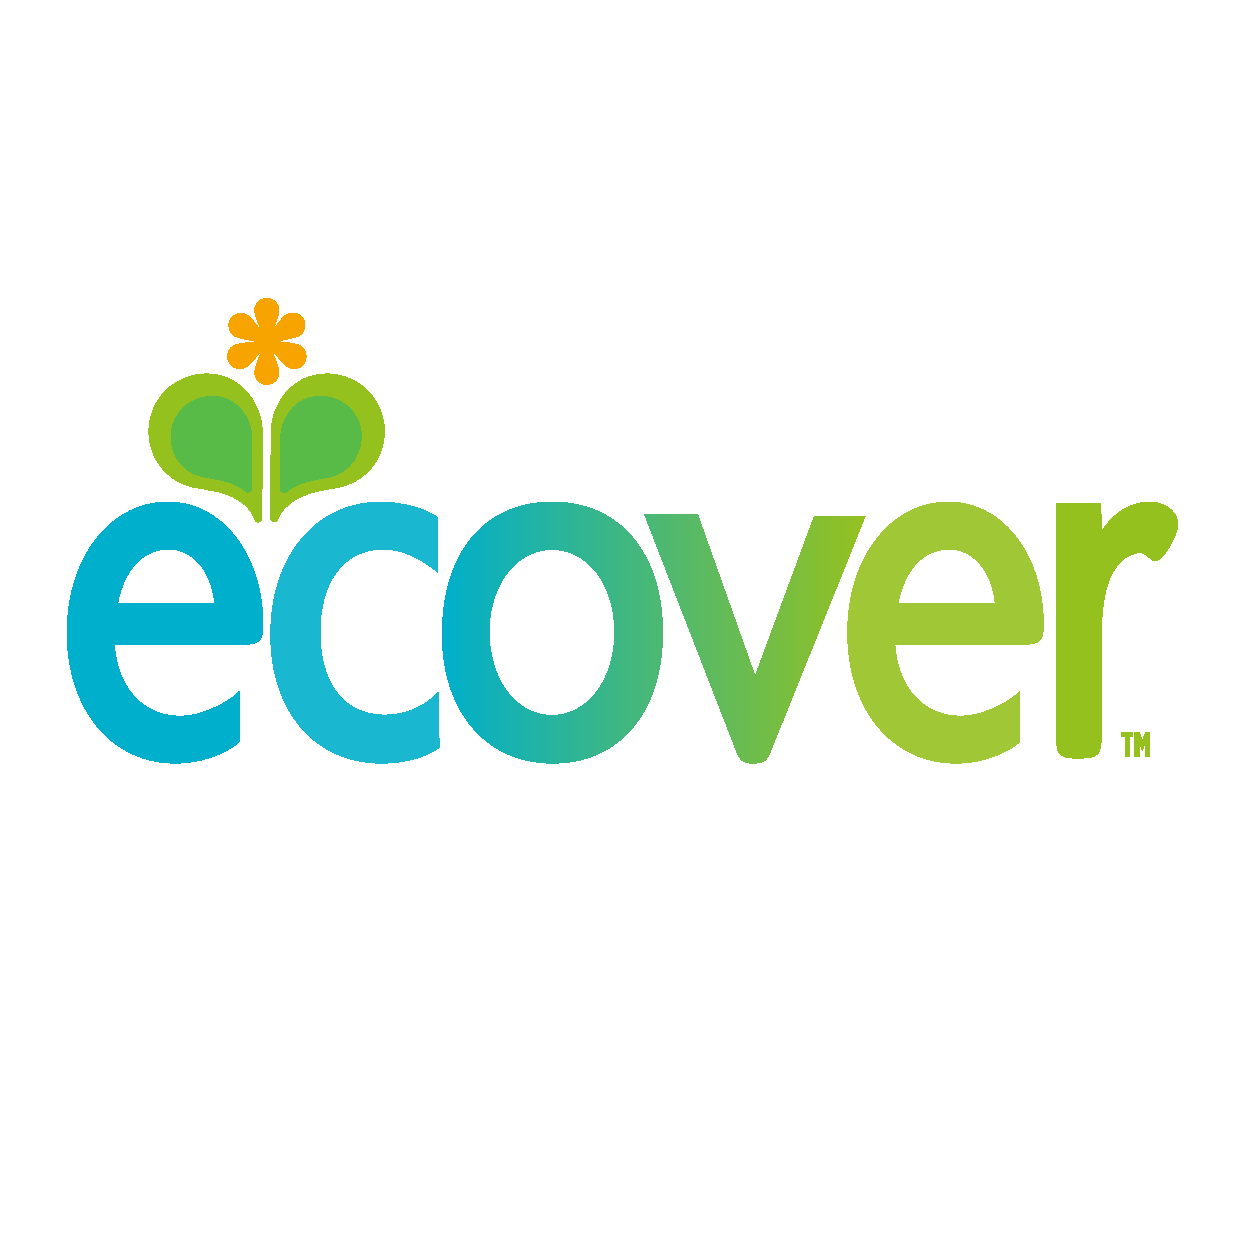 Ecover Plant-based Cleaning Products